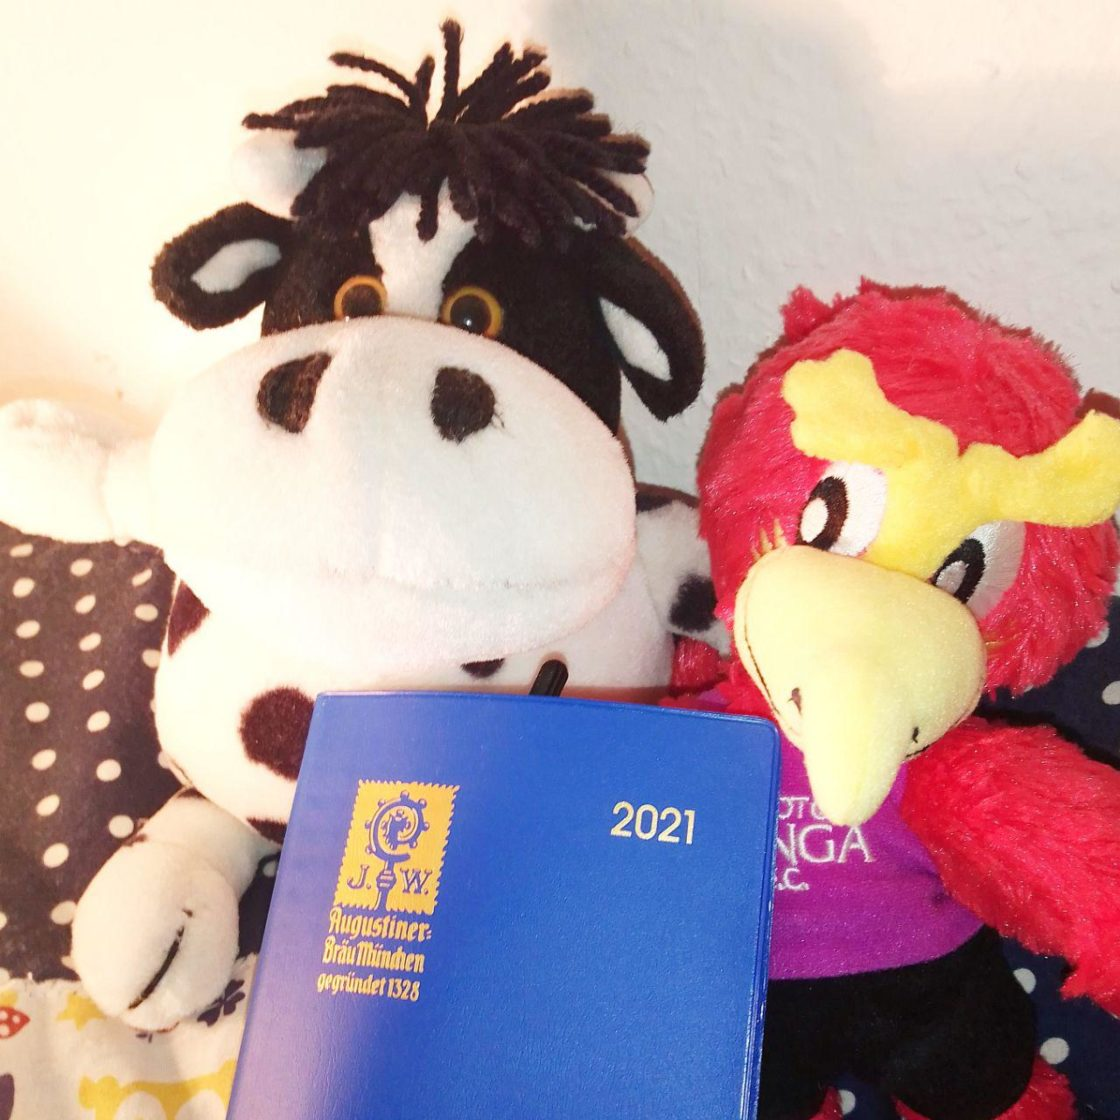 Mo Chan (Cow fluffy toy), Pasa kun (Phoenix) and 2021 Calendar of Augstiner Bräu